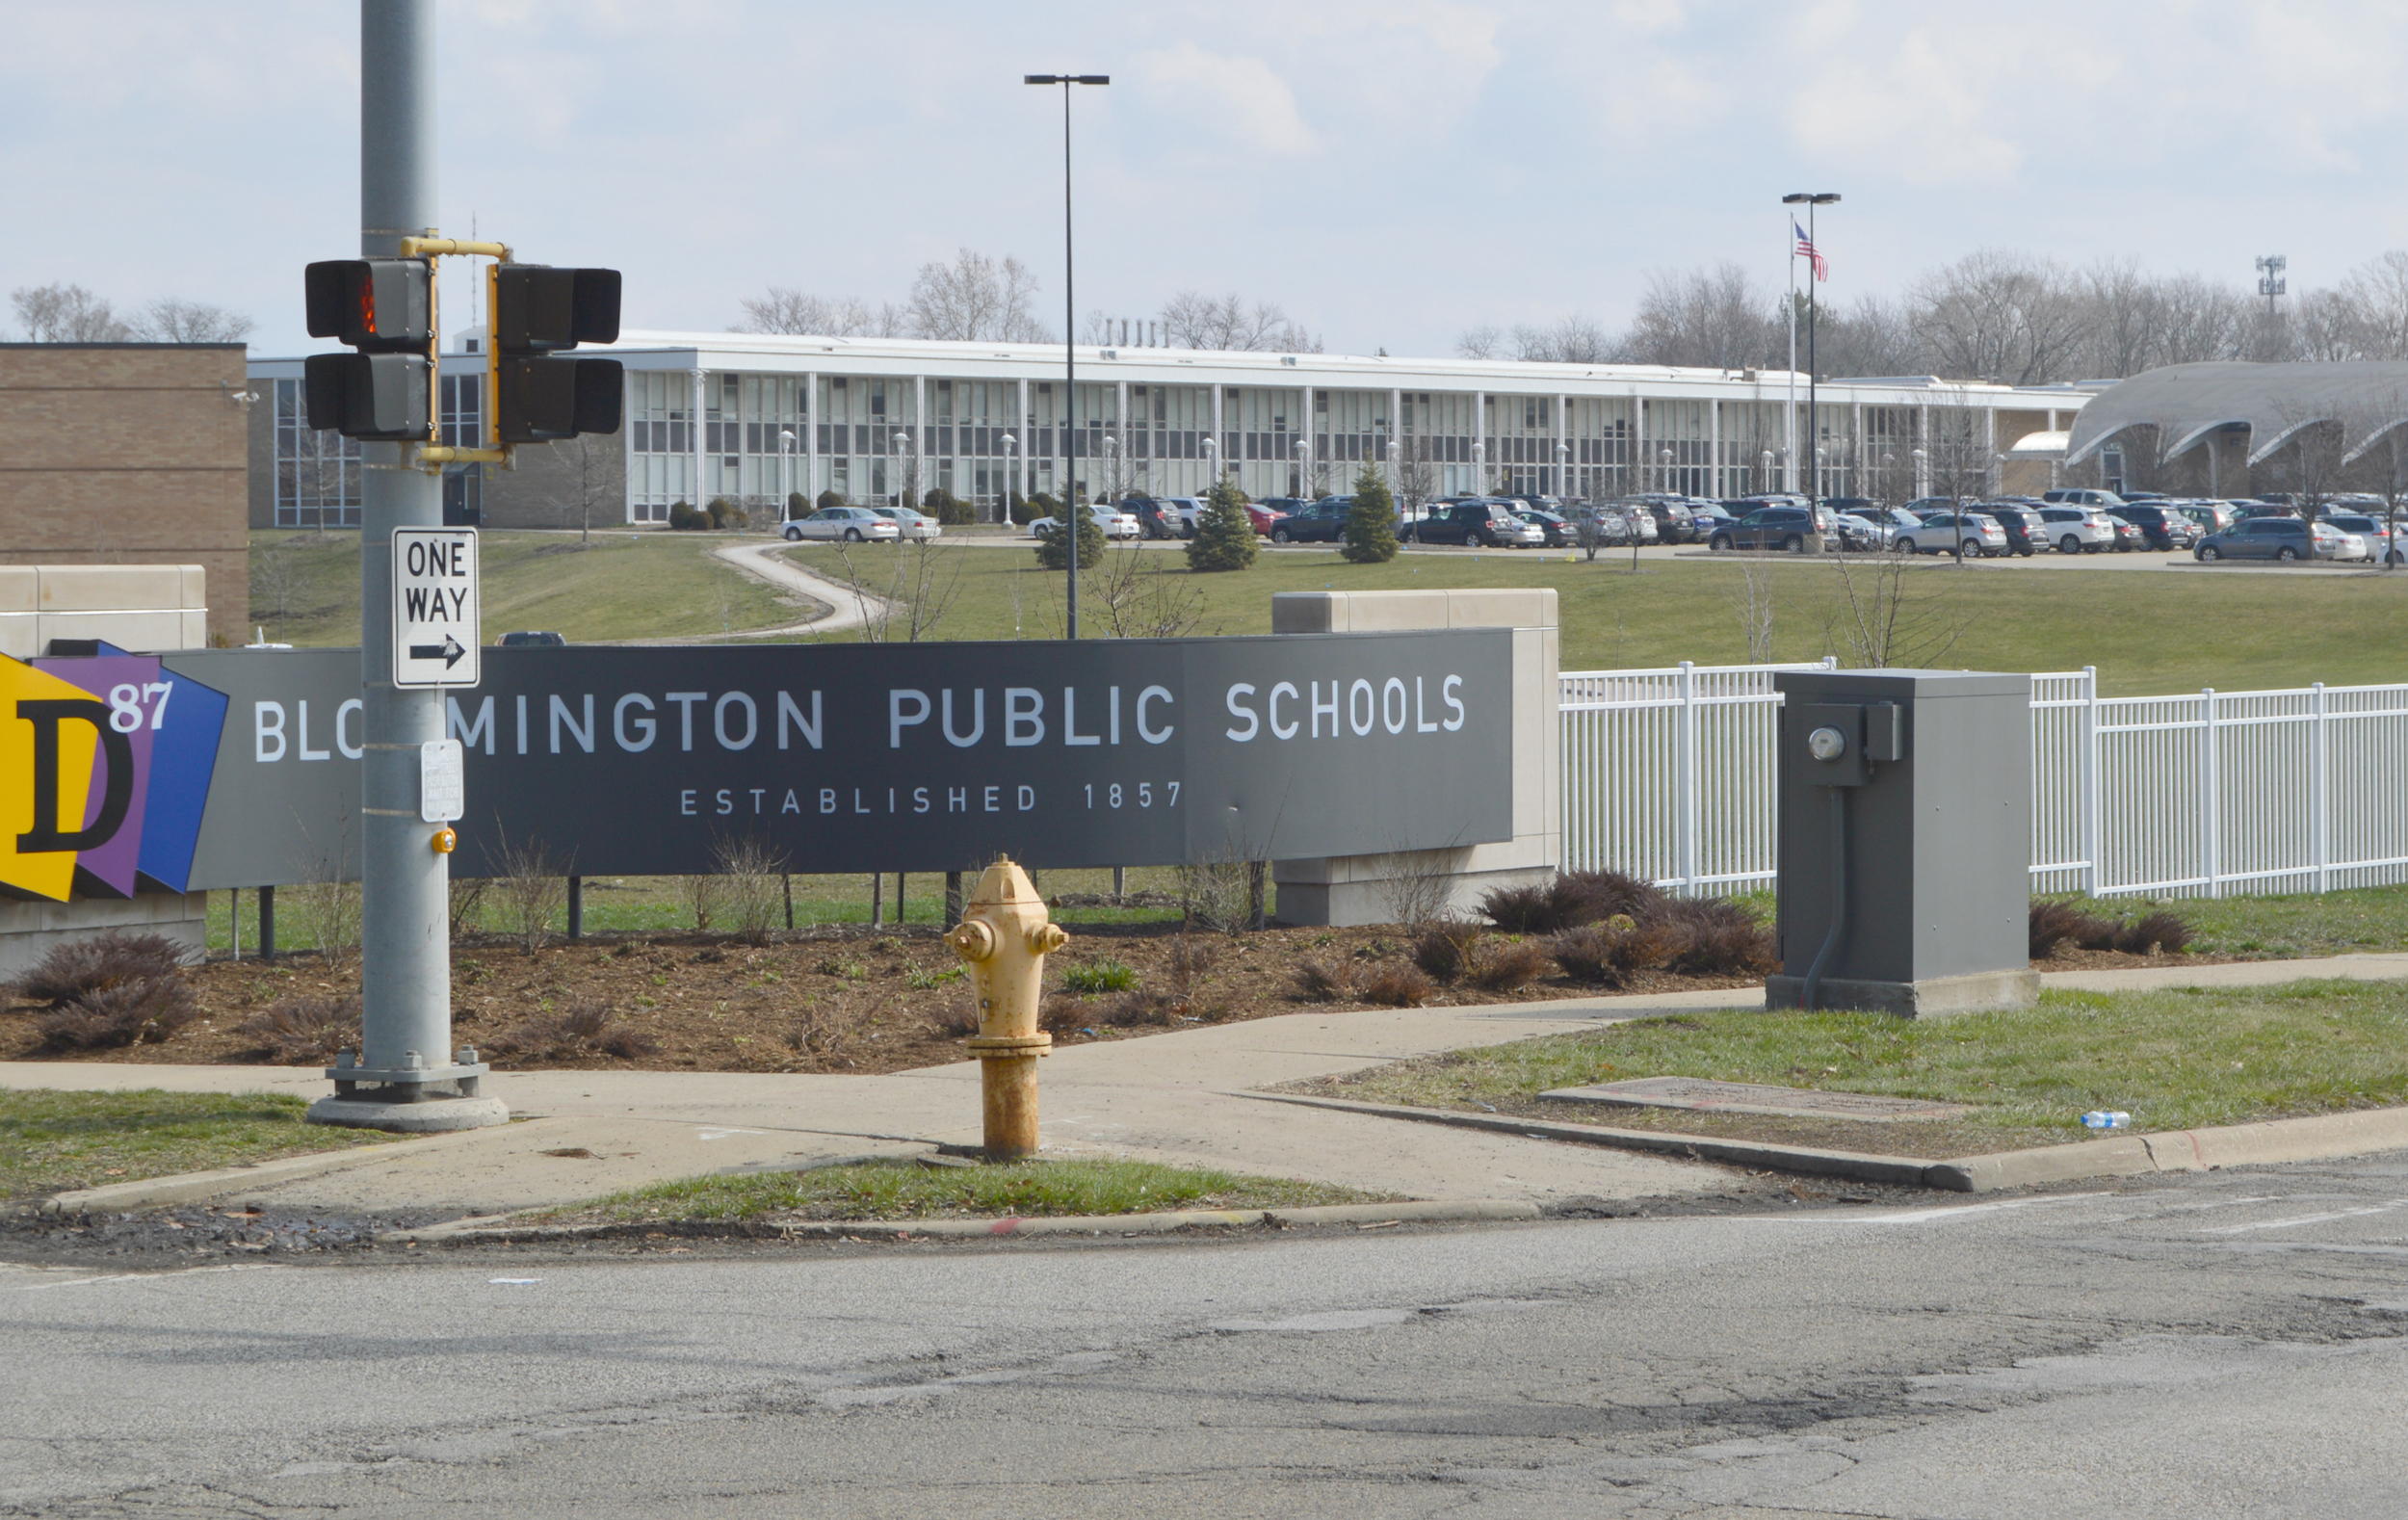 District 87 issued $8M in bonds to finance three major facilities projects at Bloomington High School. (Image credit: Breanna Grow)